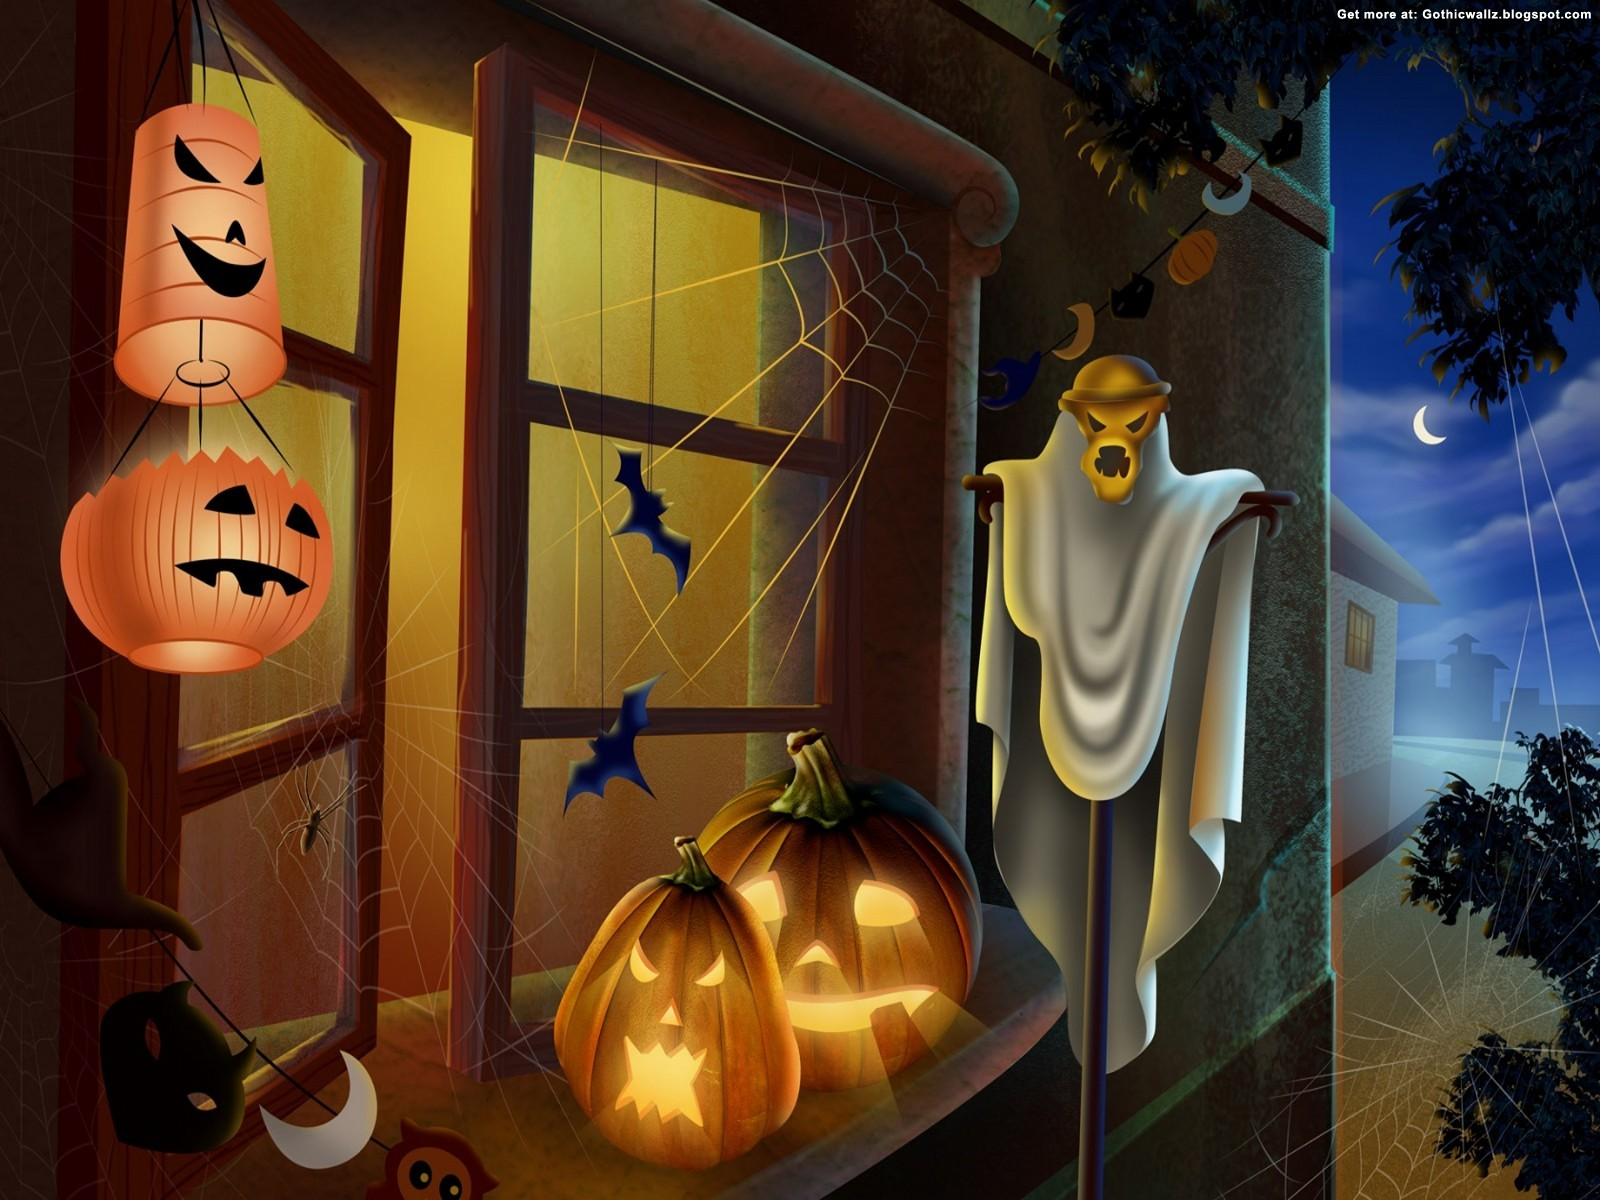 pumpkins on window | Gothic Wallpaper Download